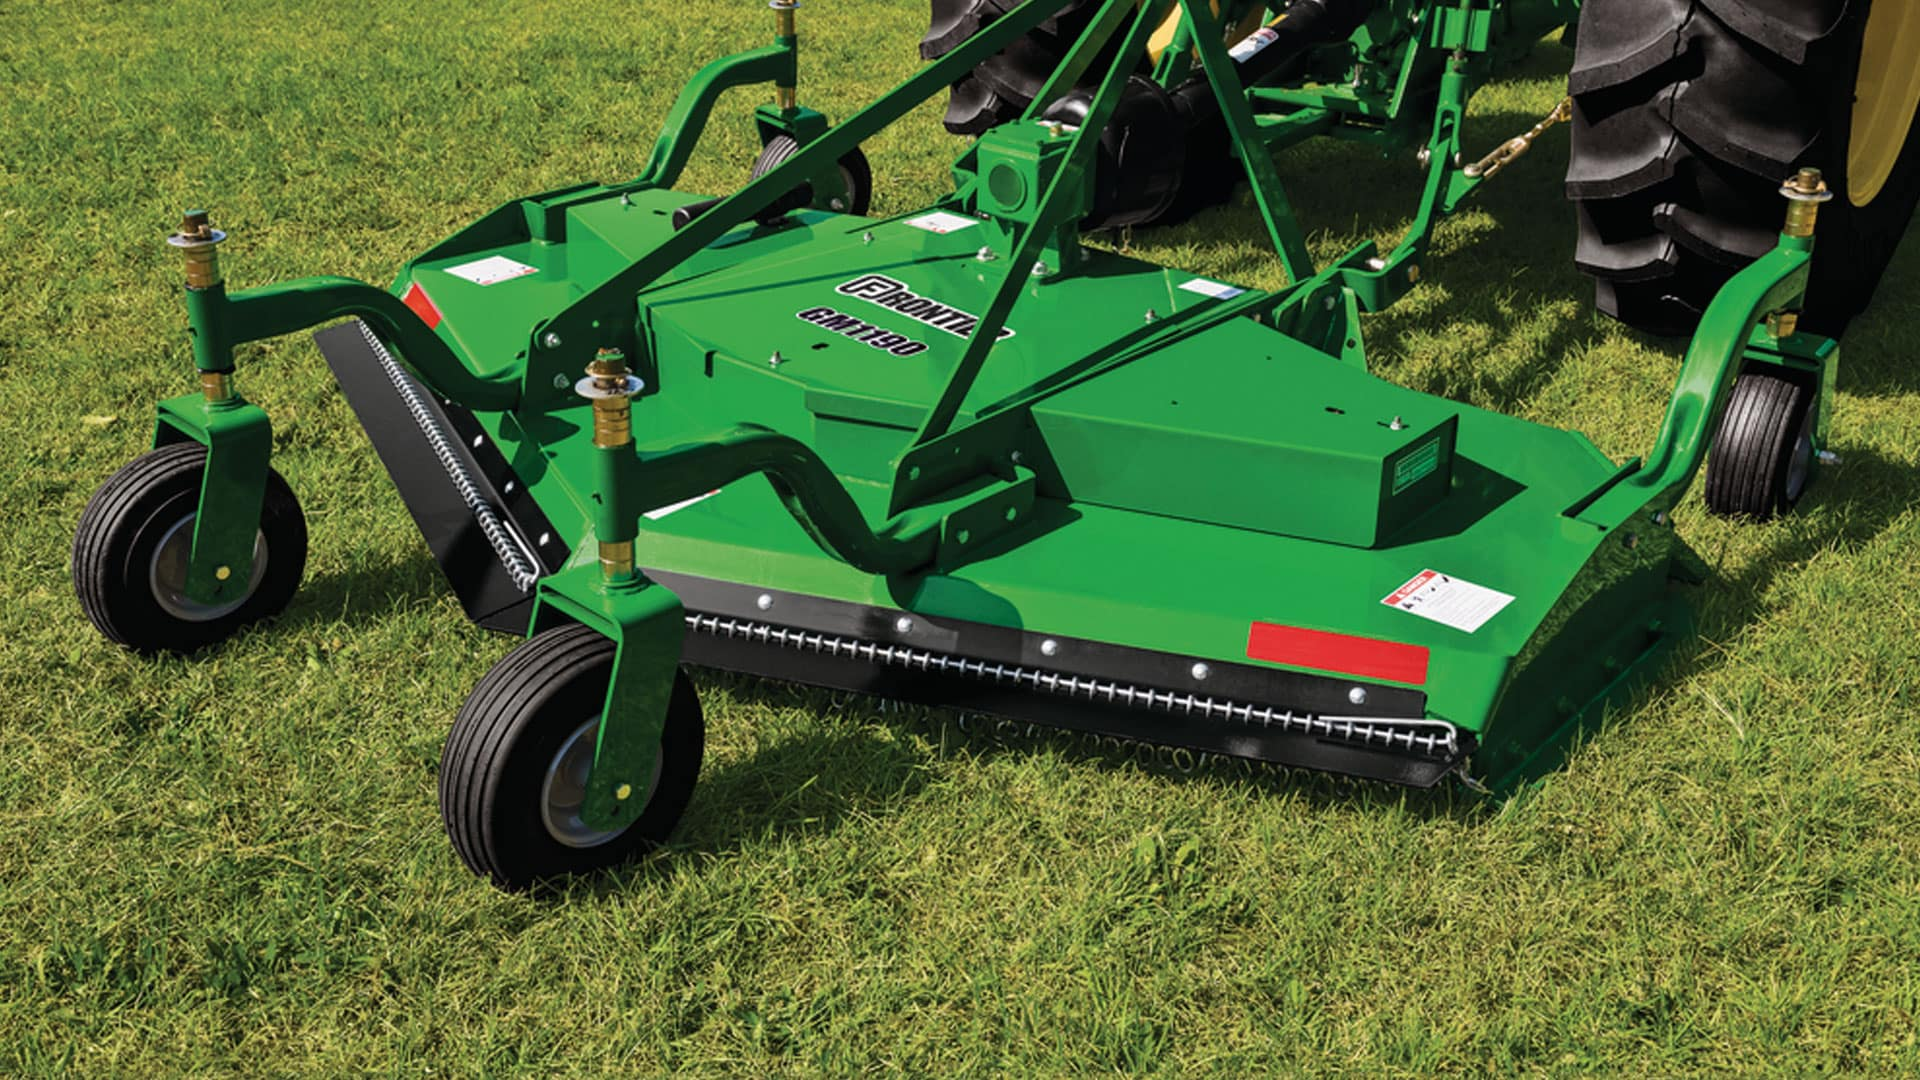 image of grooming mower in grass